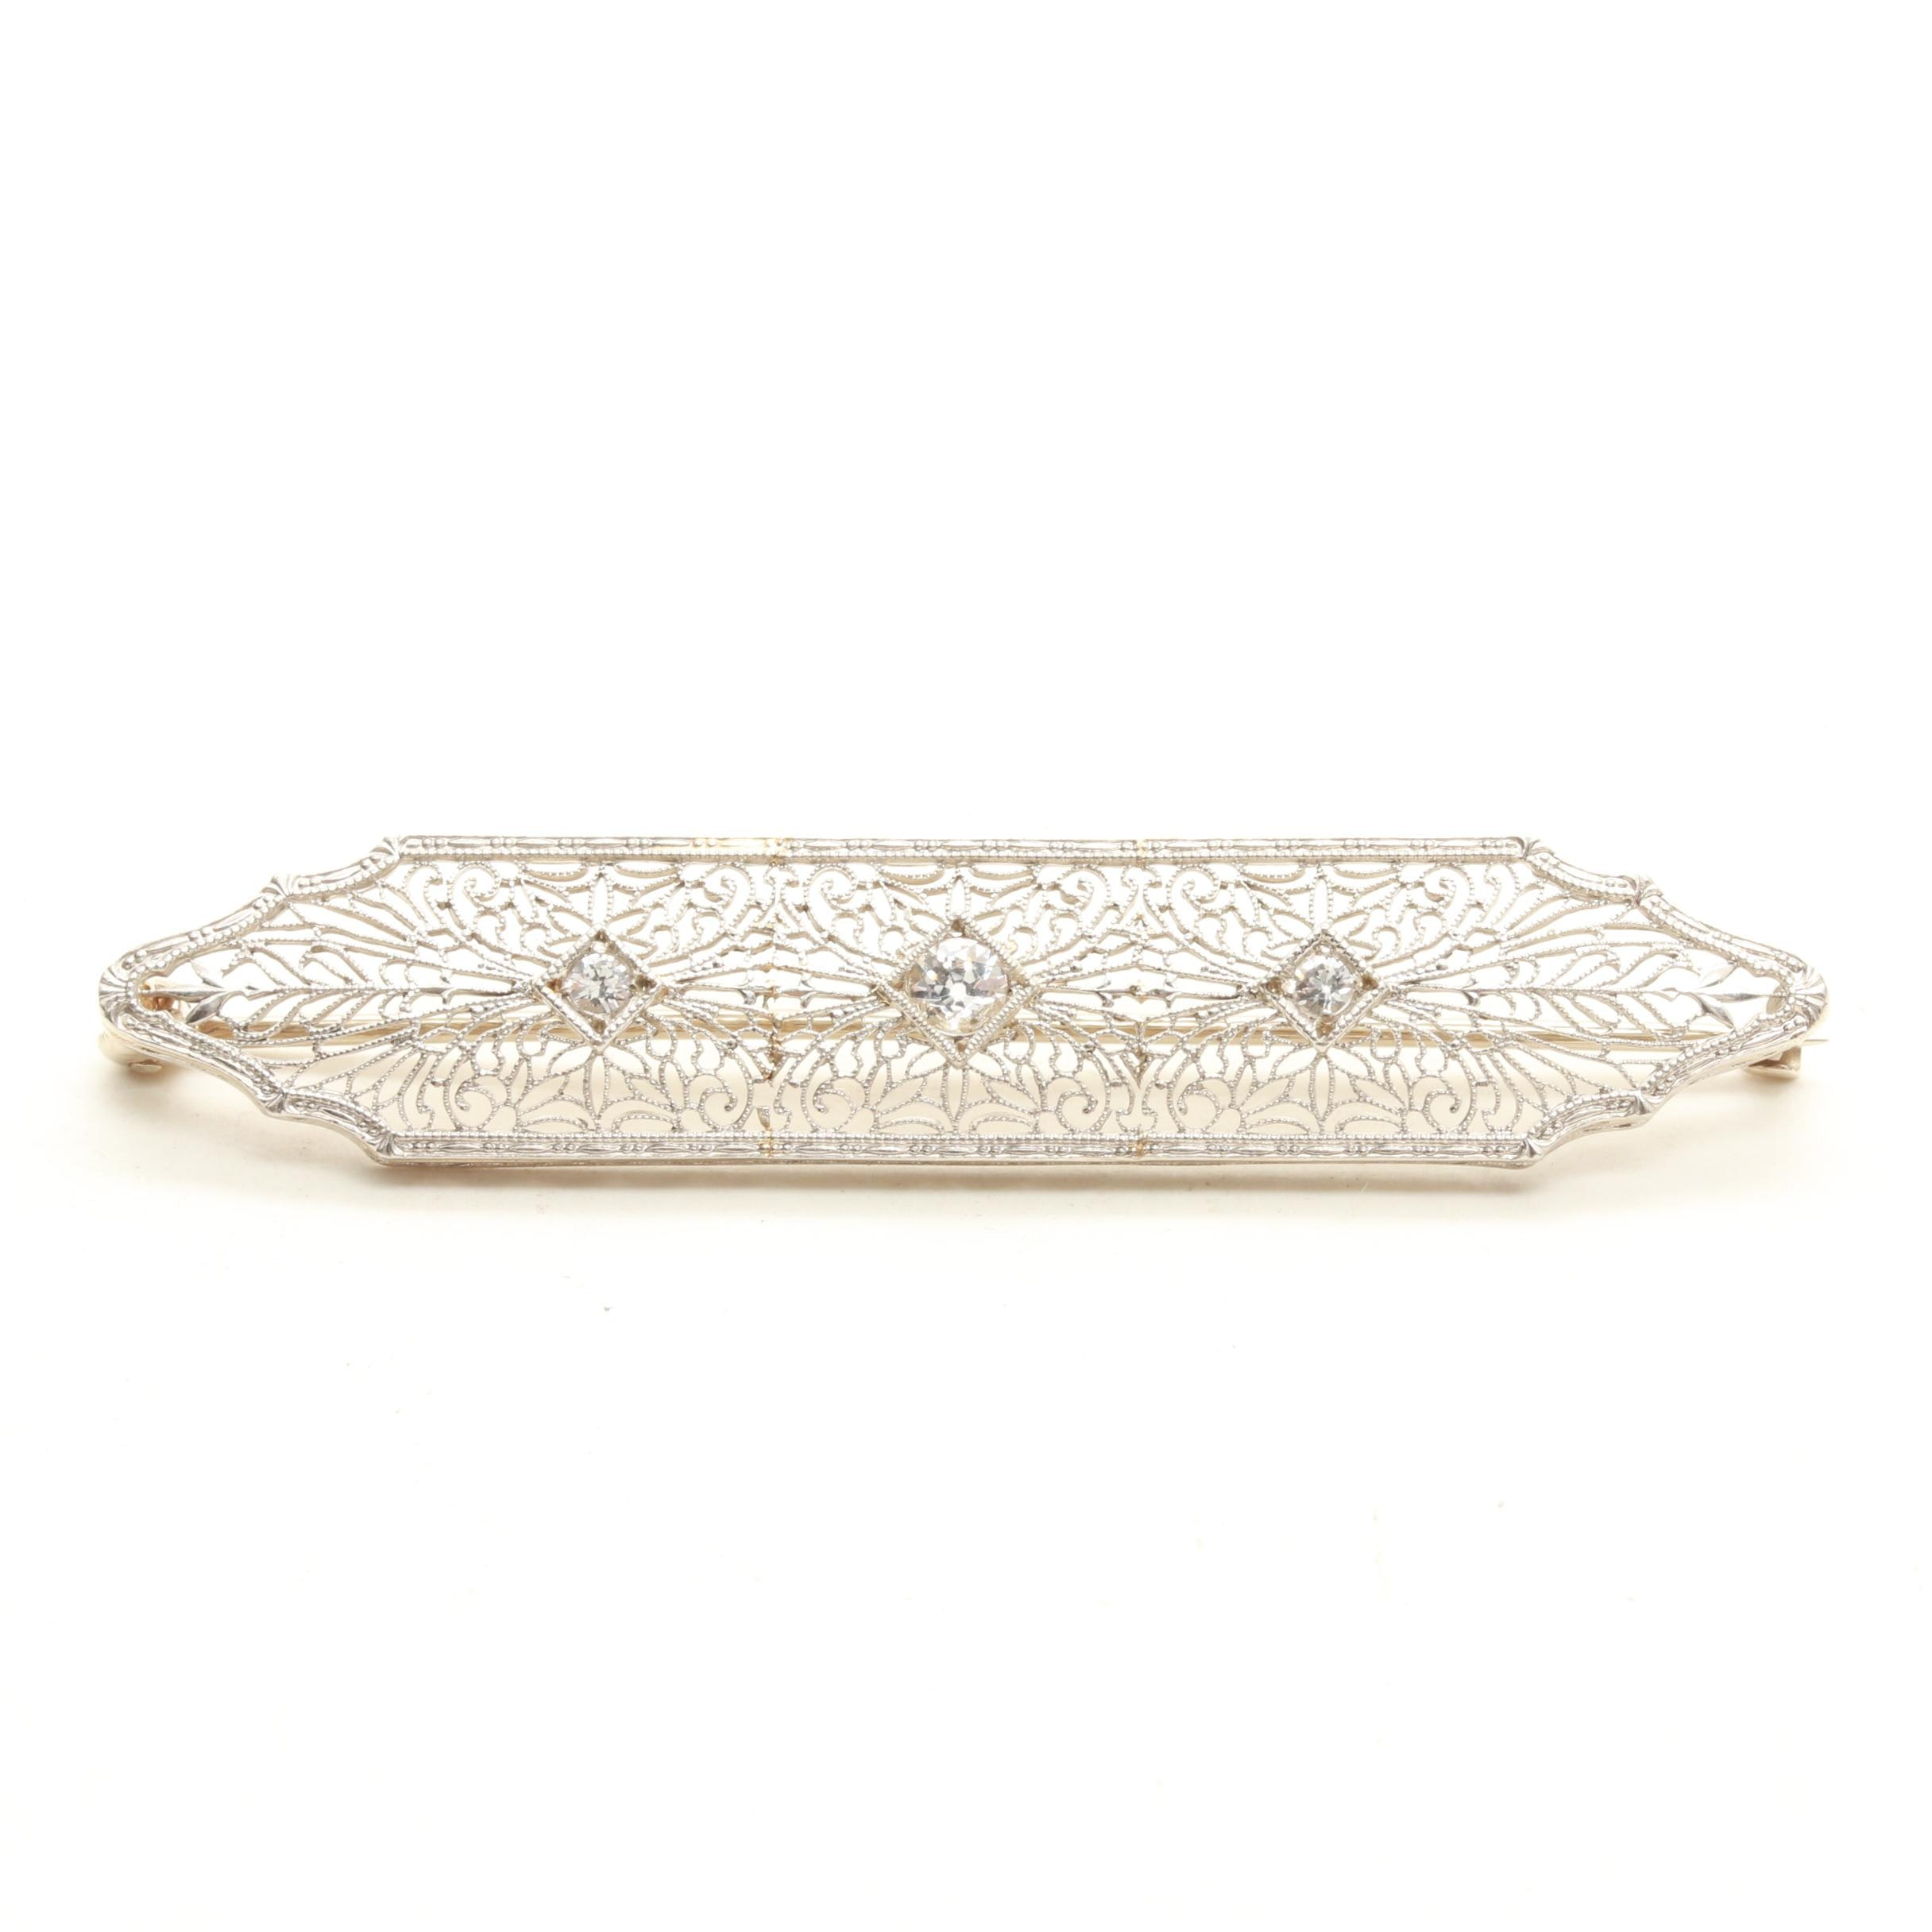 Platinum and 14K White Gold Synthetic White Spinel Brooch